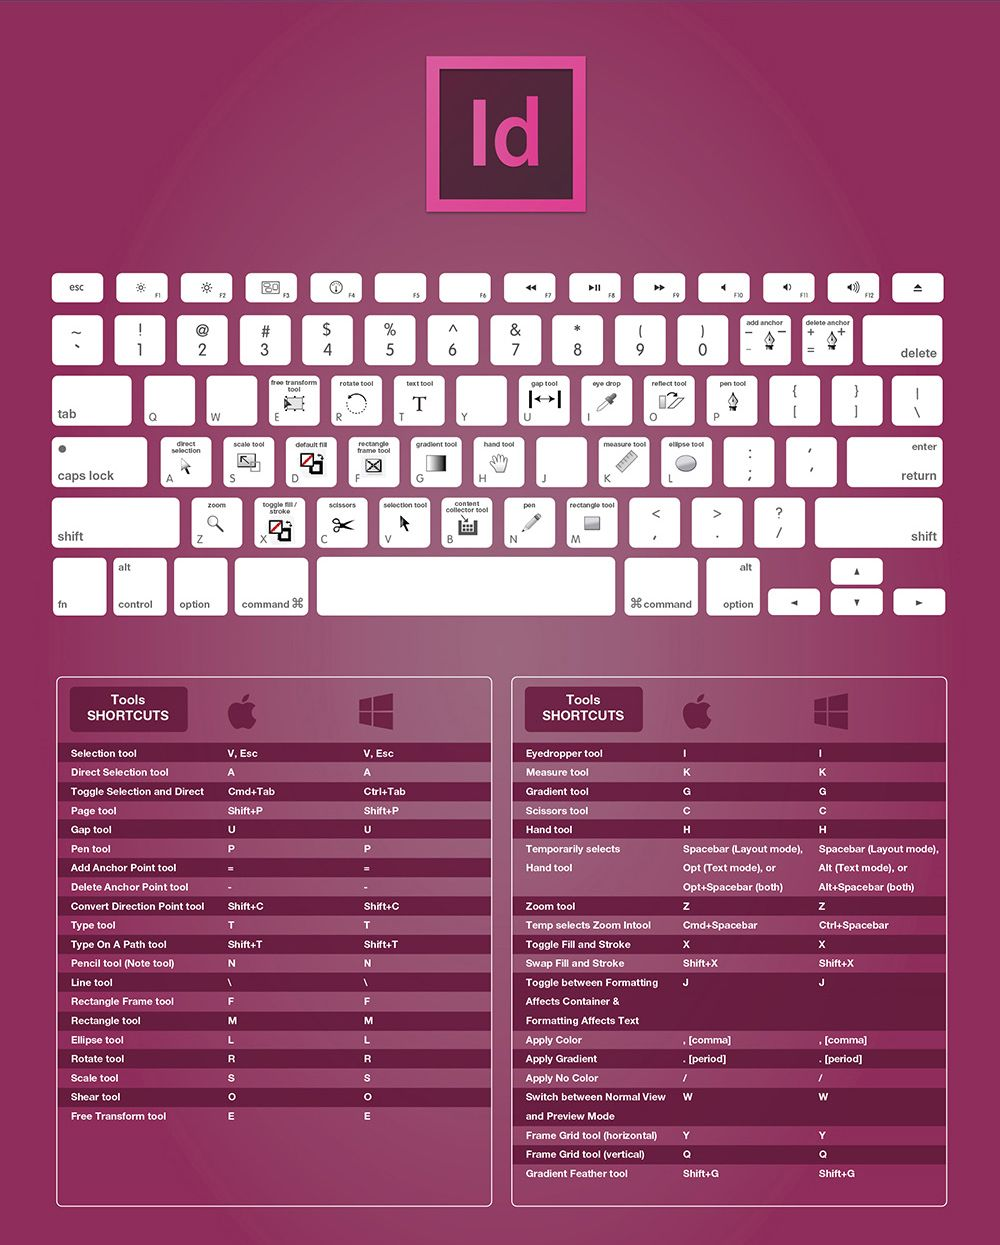 Adobe cc shortcuts cheat sheet design tips pinterest adobe the complete adobe indesign cc keyboard shortcuts for designers guide 2015 fandeluxe Images